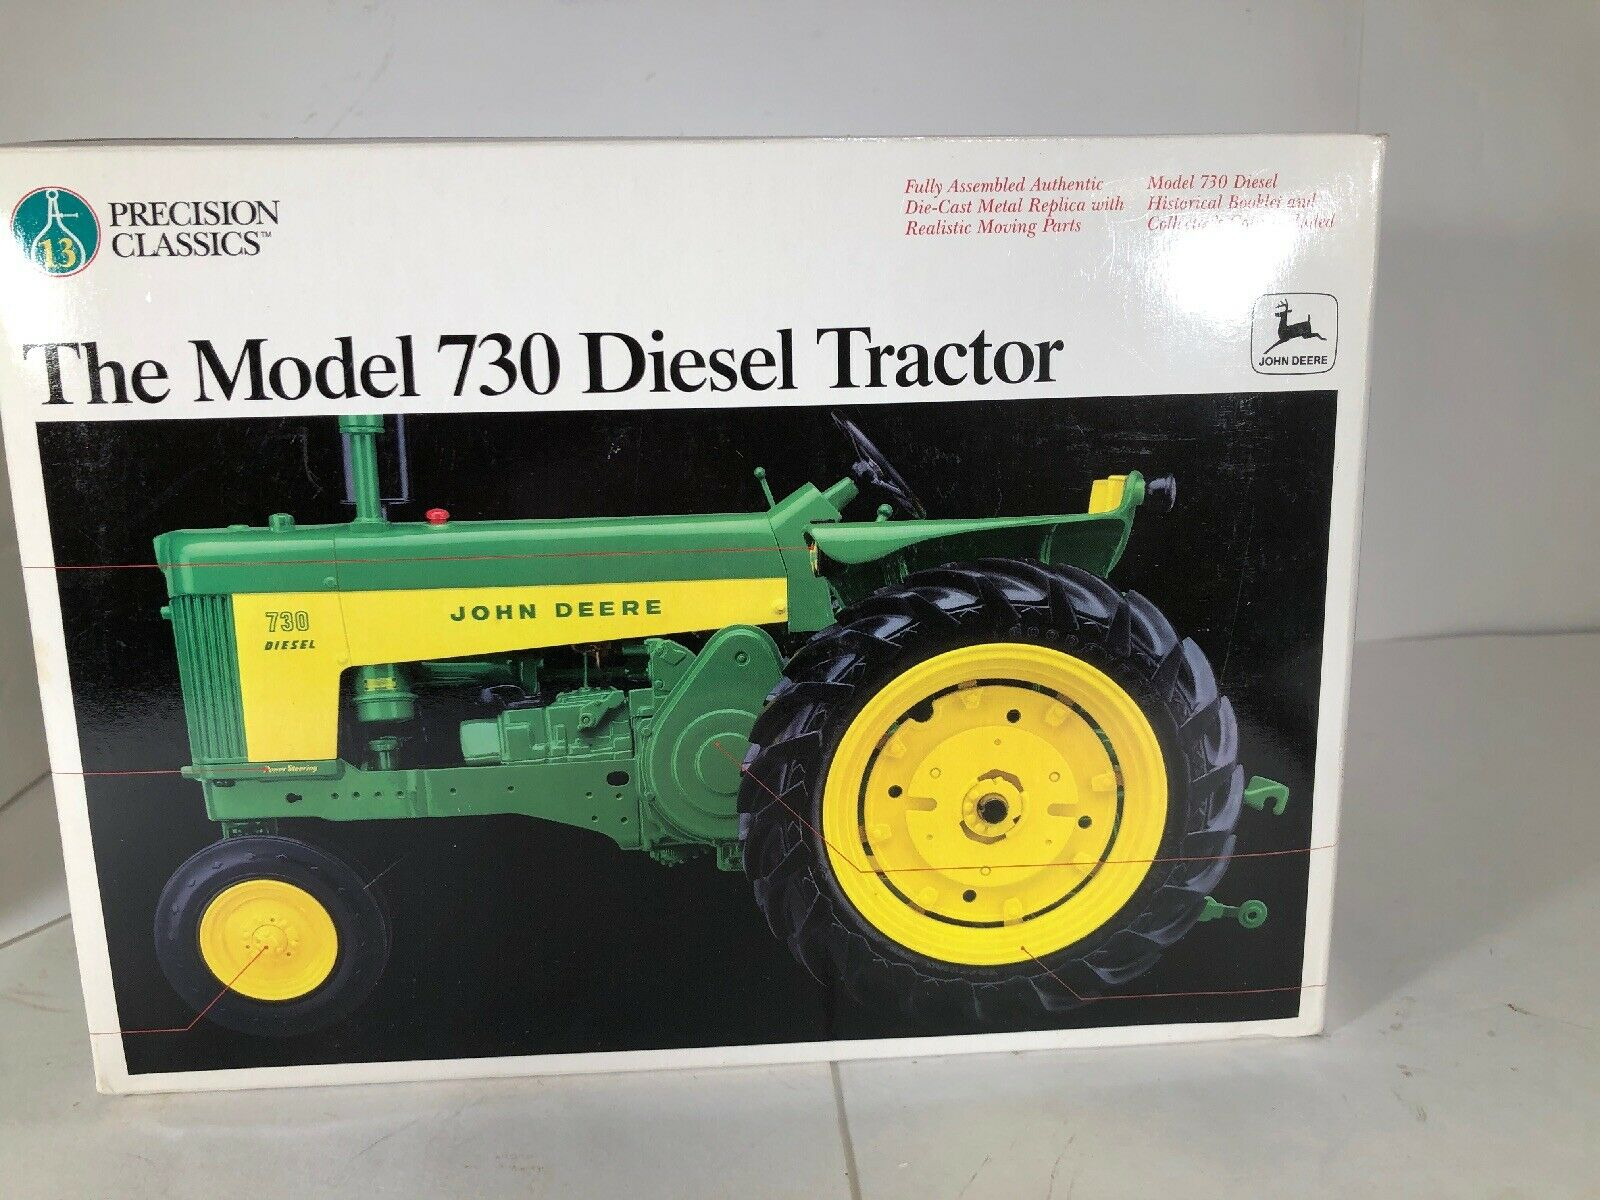 Ertl Precision Classics  13 John Deere Model 730 Diesel Tractor 1 16 NEW  SEALED